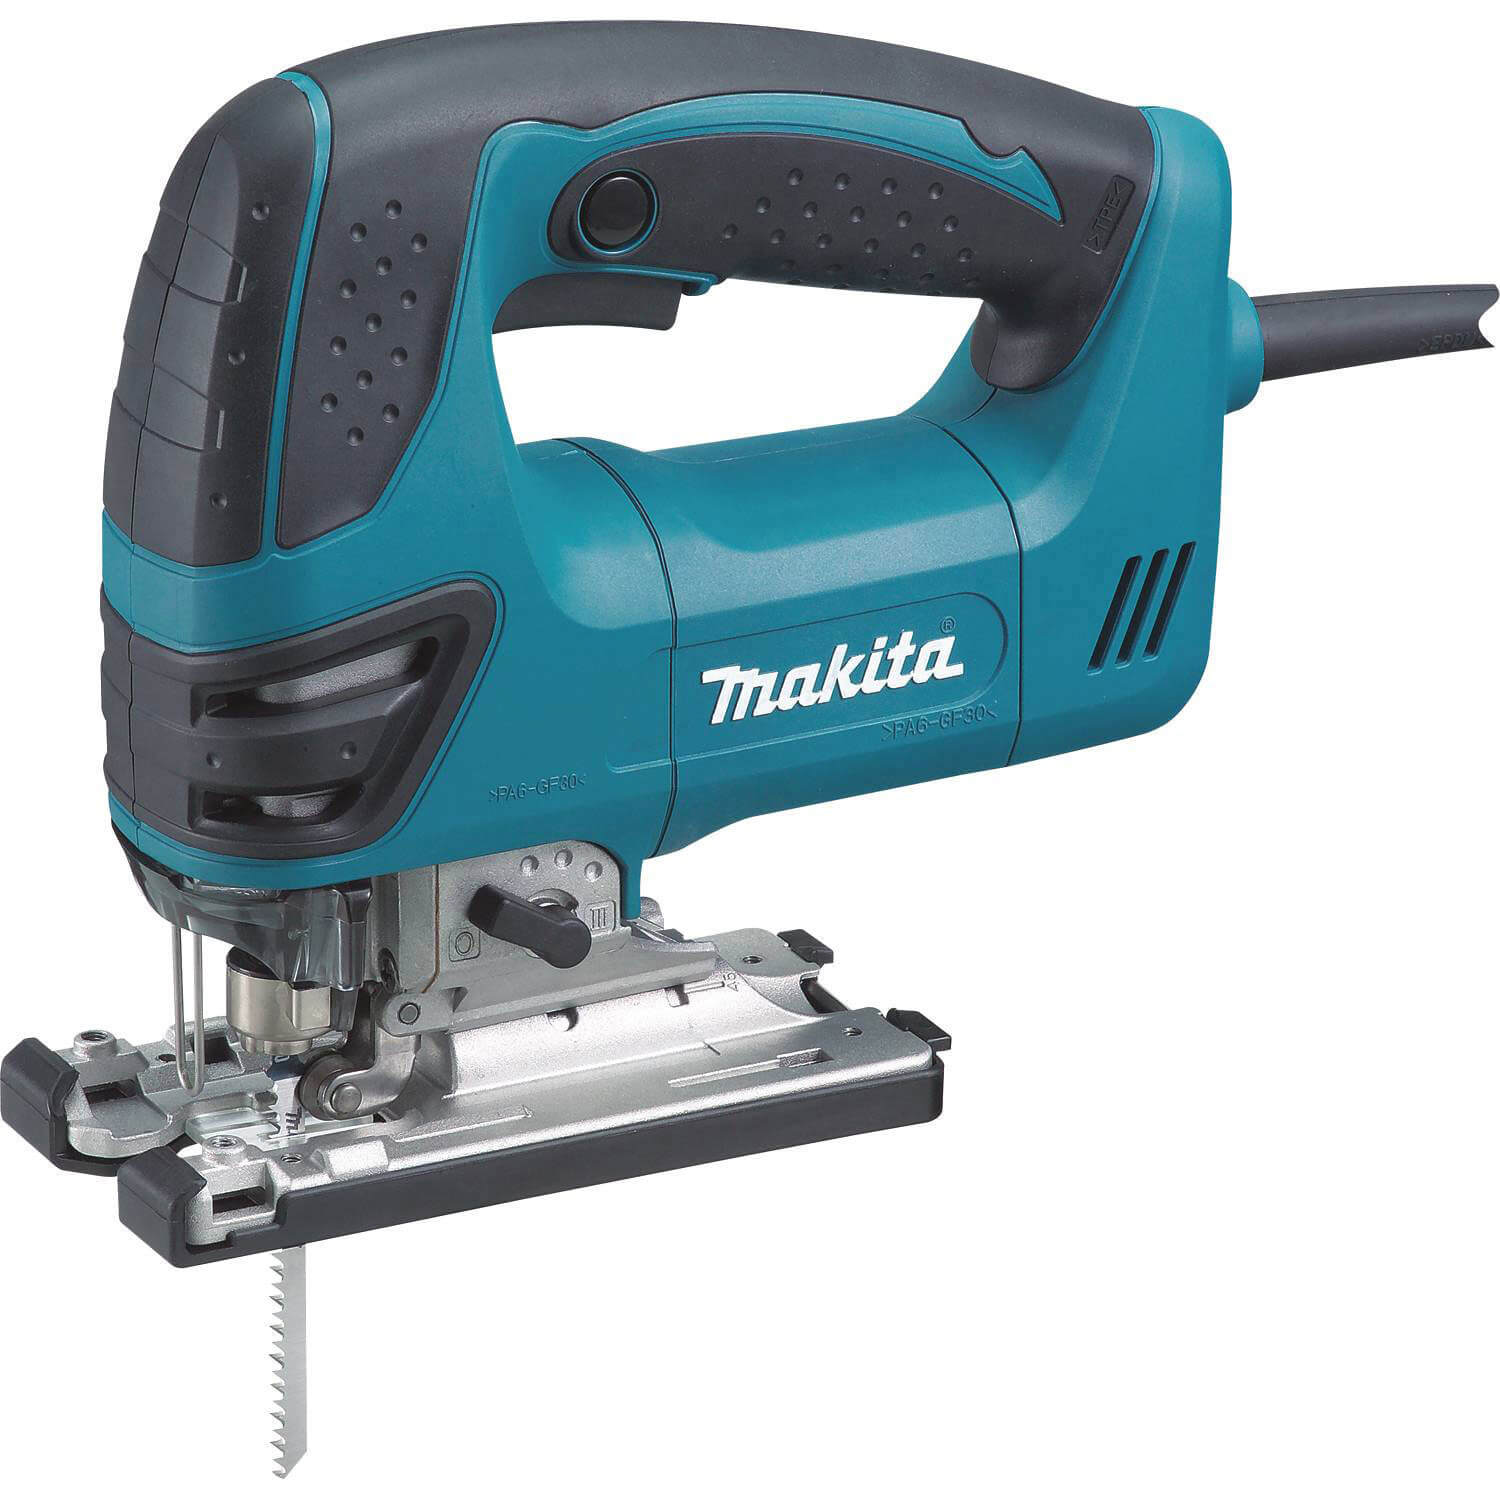 Makita 4350FCT Orbital Jigsaw with Job Light 720w 240v